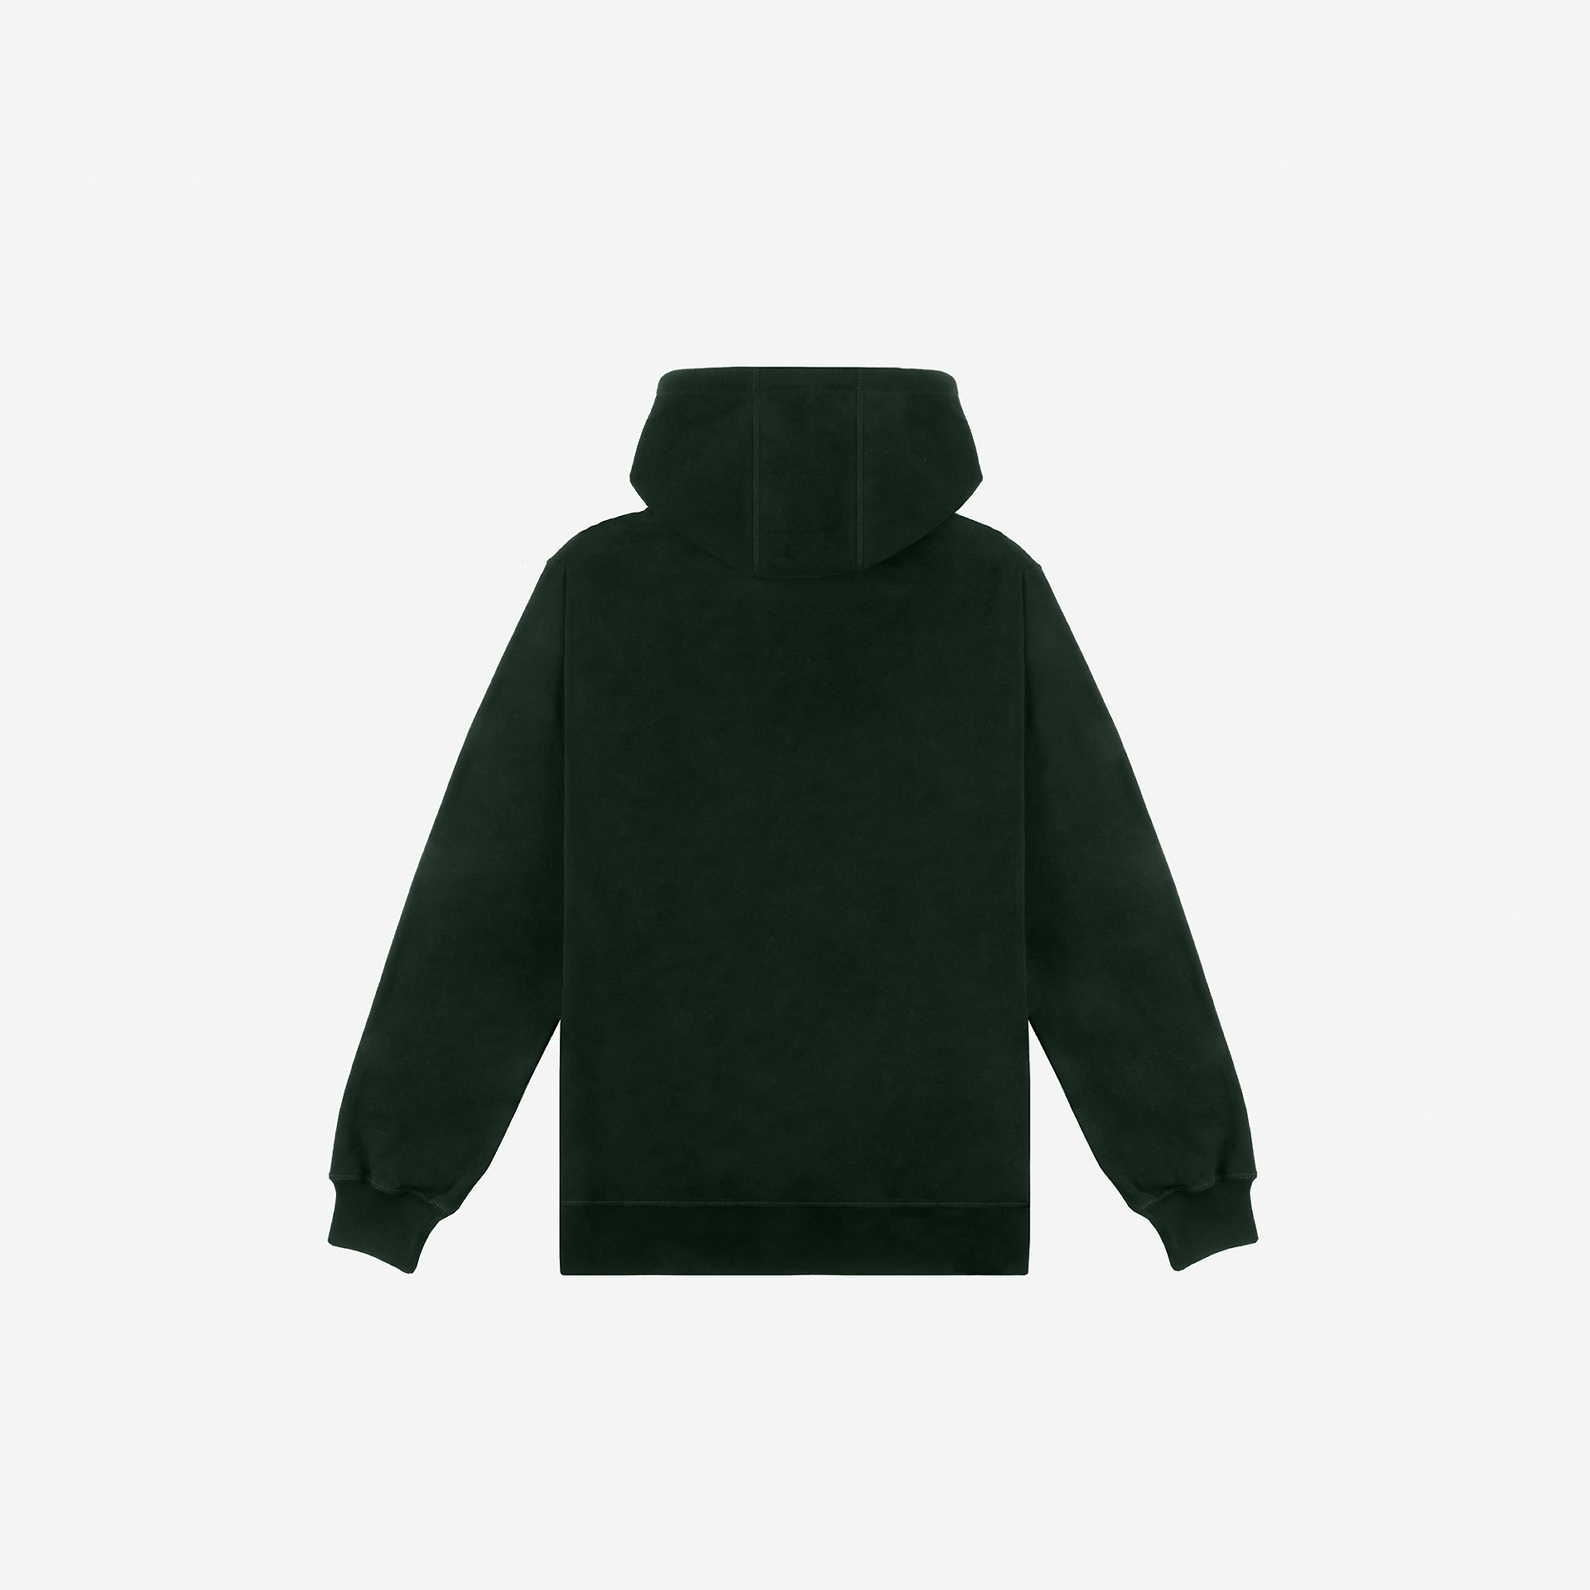 【PAS DE MER/パドゥメ】WINTER SUCKS HOODY パーカー / DARK GREEN